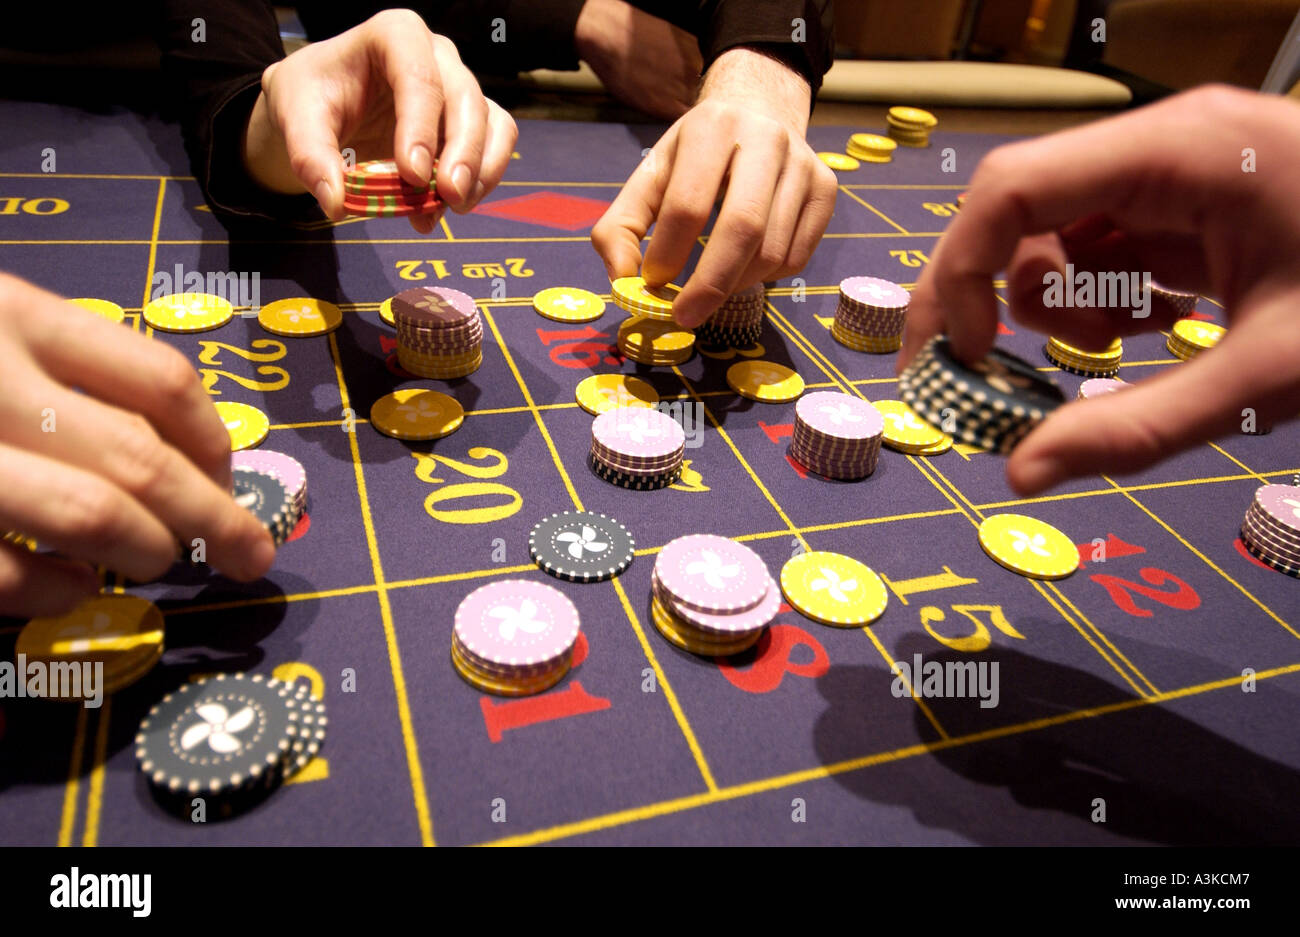 Punters place bets with chips on roulette table - Stock Image